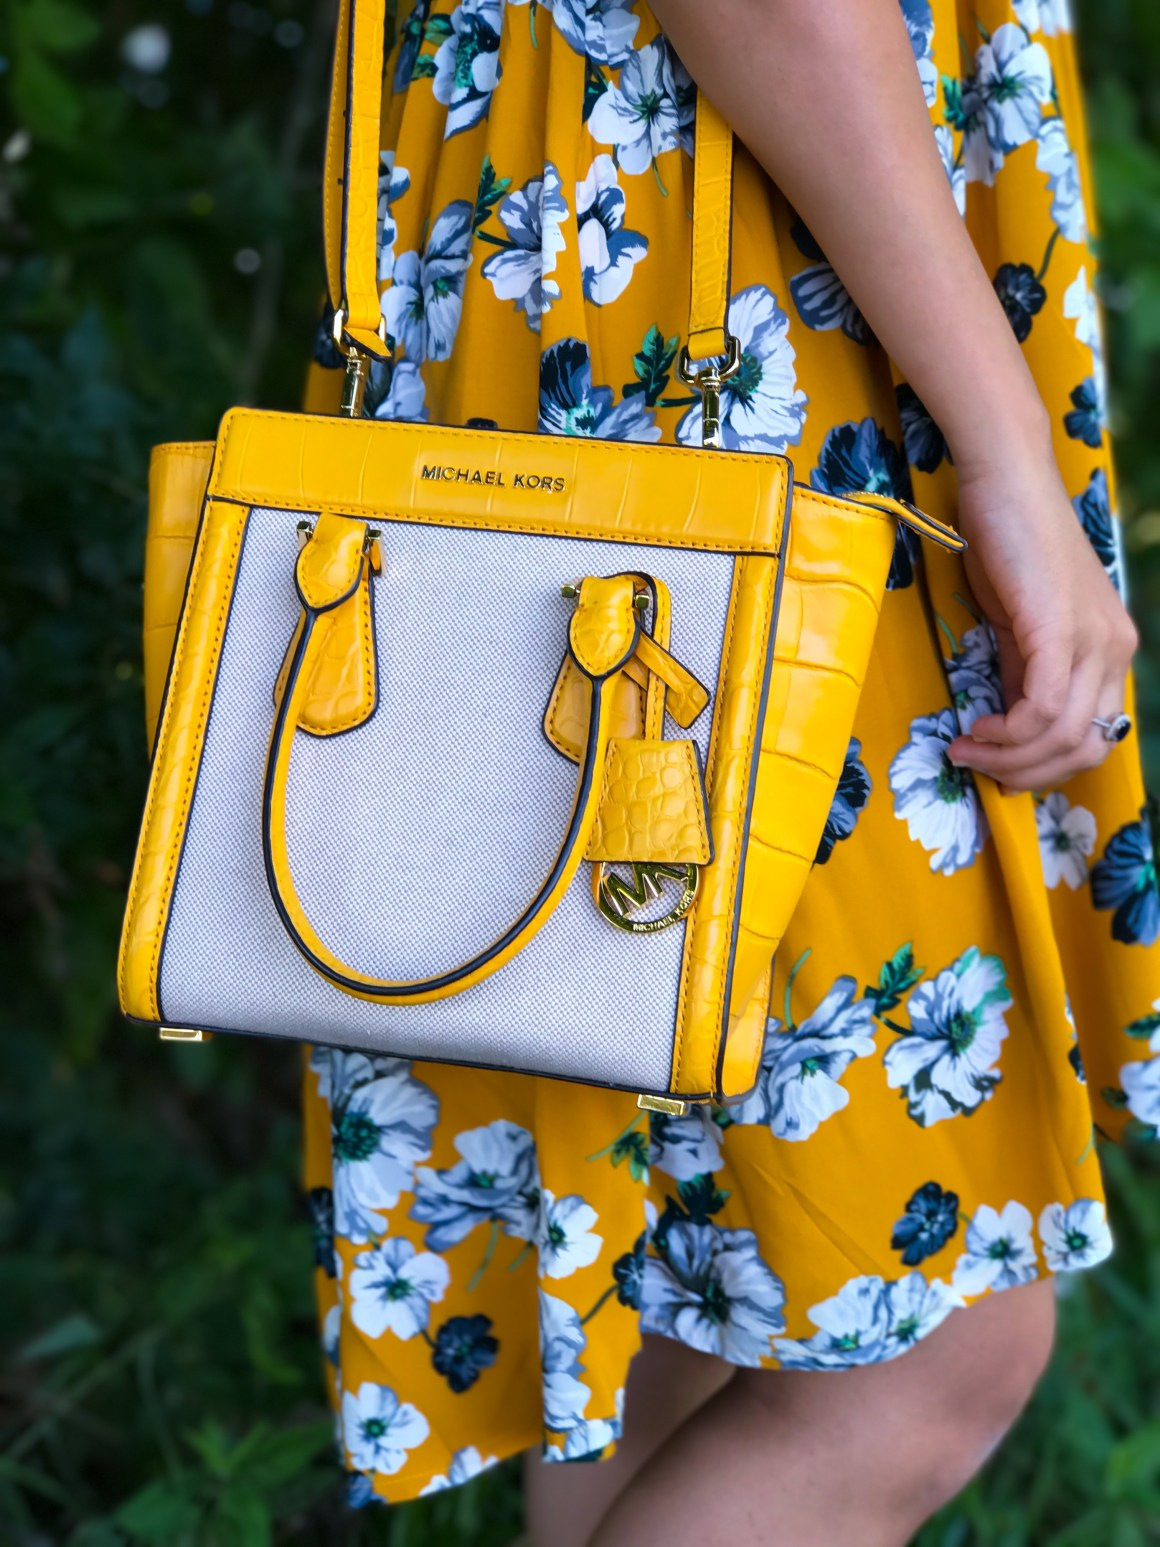 Michael Kors Yellow Satchel